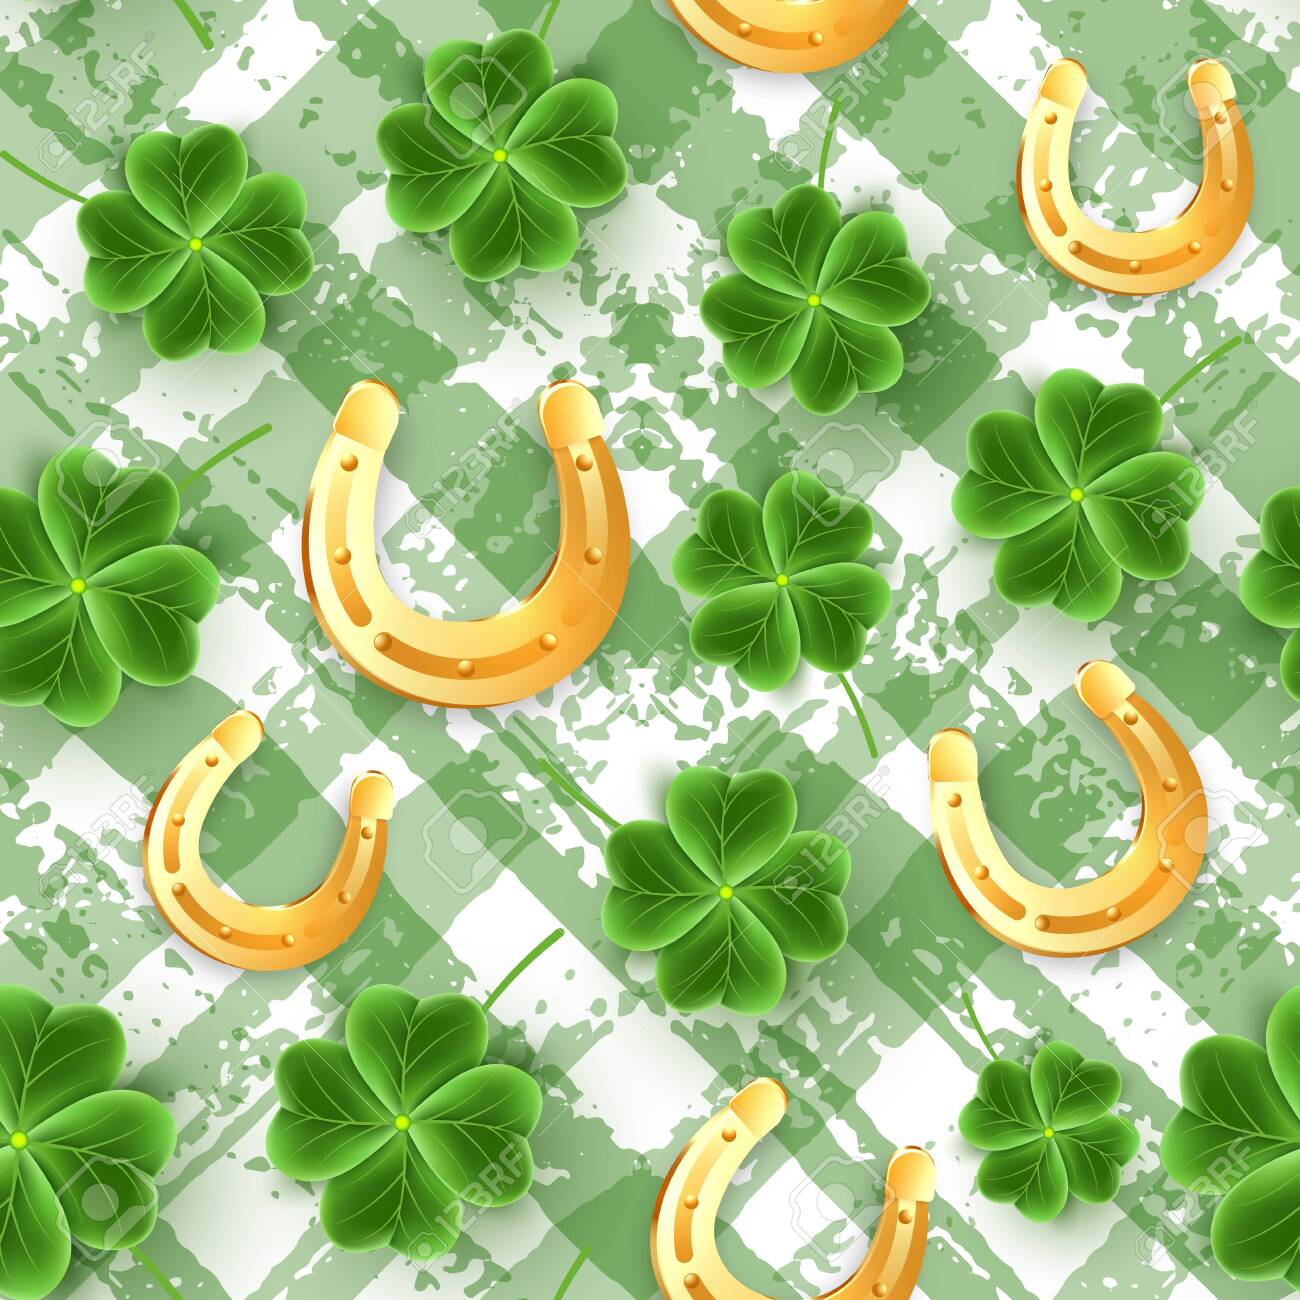 San Patricks Day Pattern Of Realistic Clover Leaves Green Shamrock Grass Wallpaper Joy Flower For Irish Beer Festival Scottish Ornament